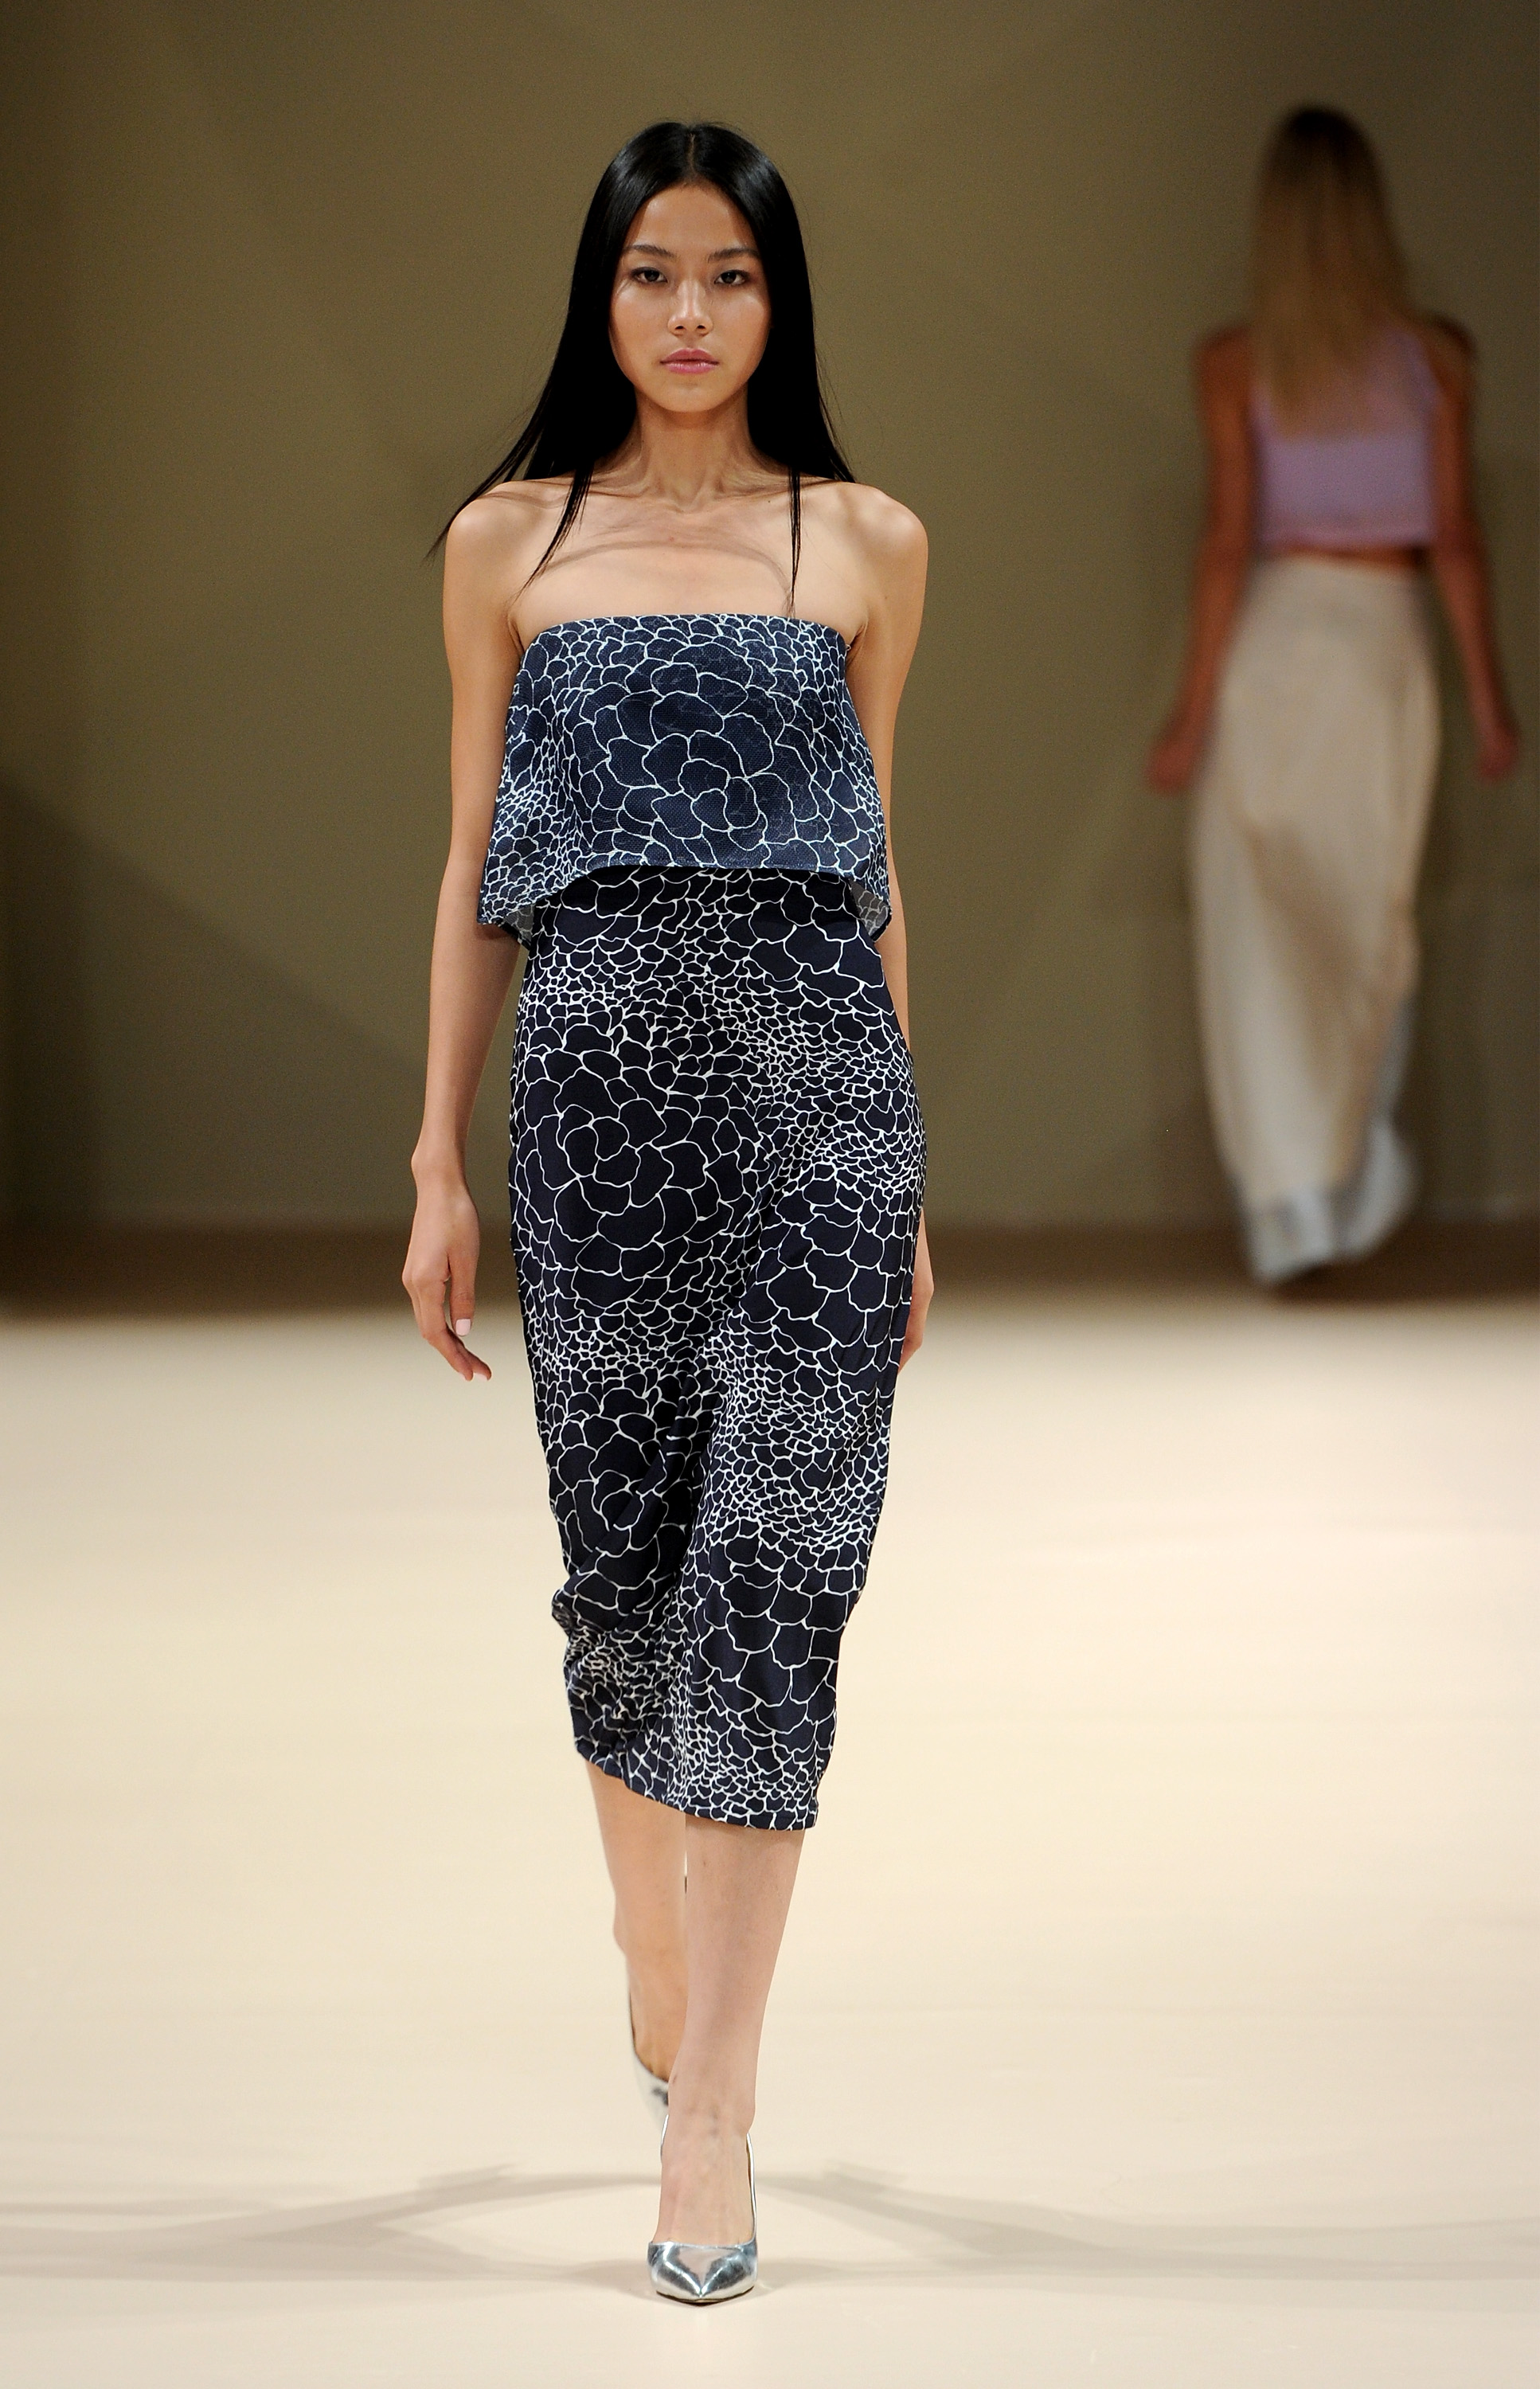 Dima Ayad SS15 - Fashion Forward Dubai - Photography - Ian Gavan, Stuart Wilson - Getty Images